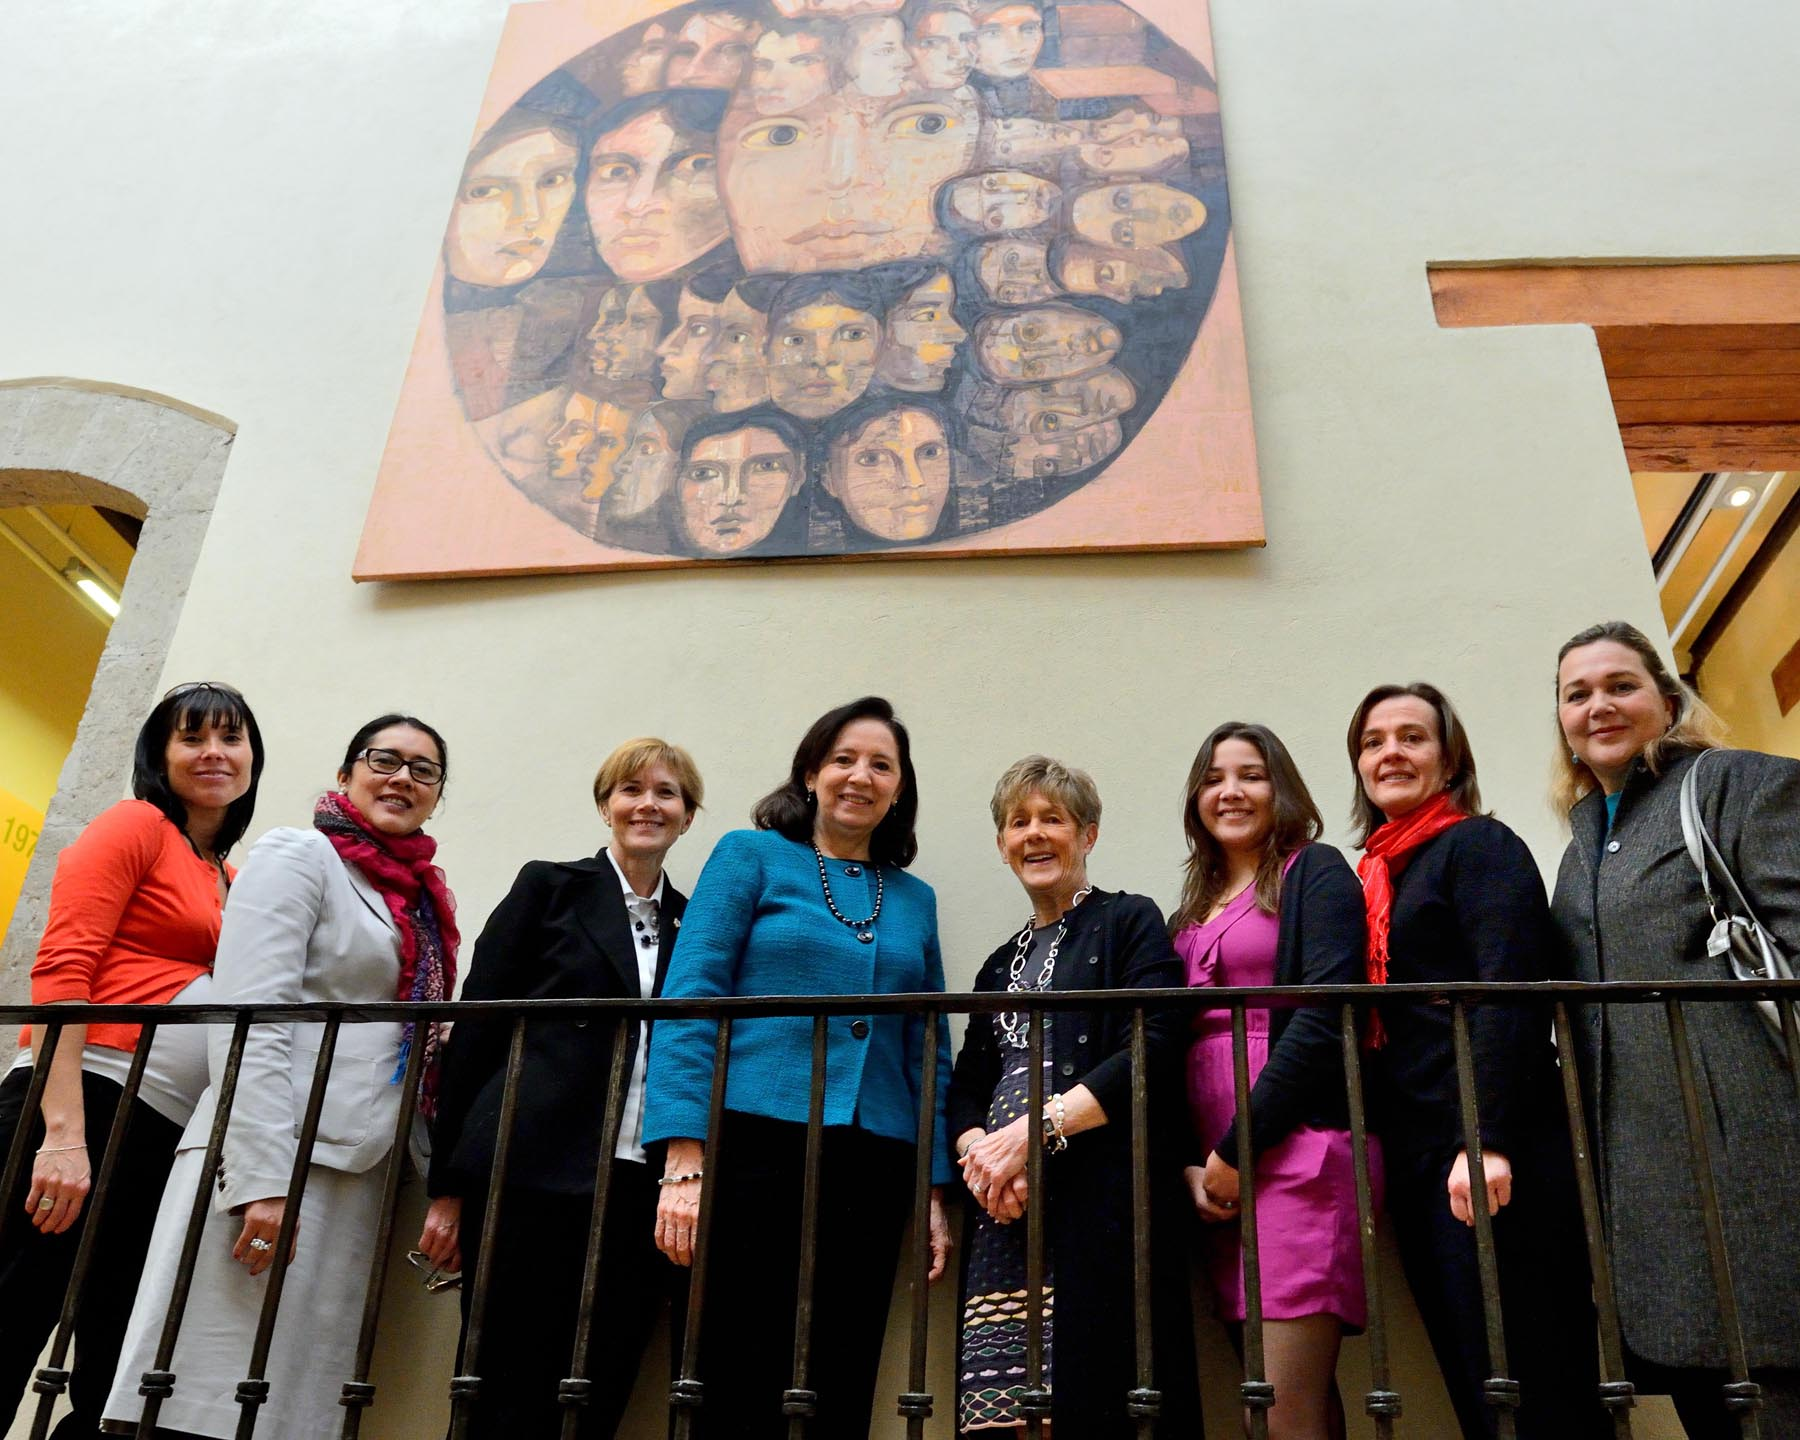 During the visit, Her Excellency insisted on having all the women accompanying her gather for a photo.